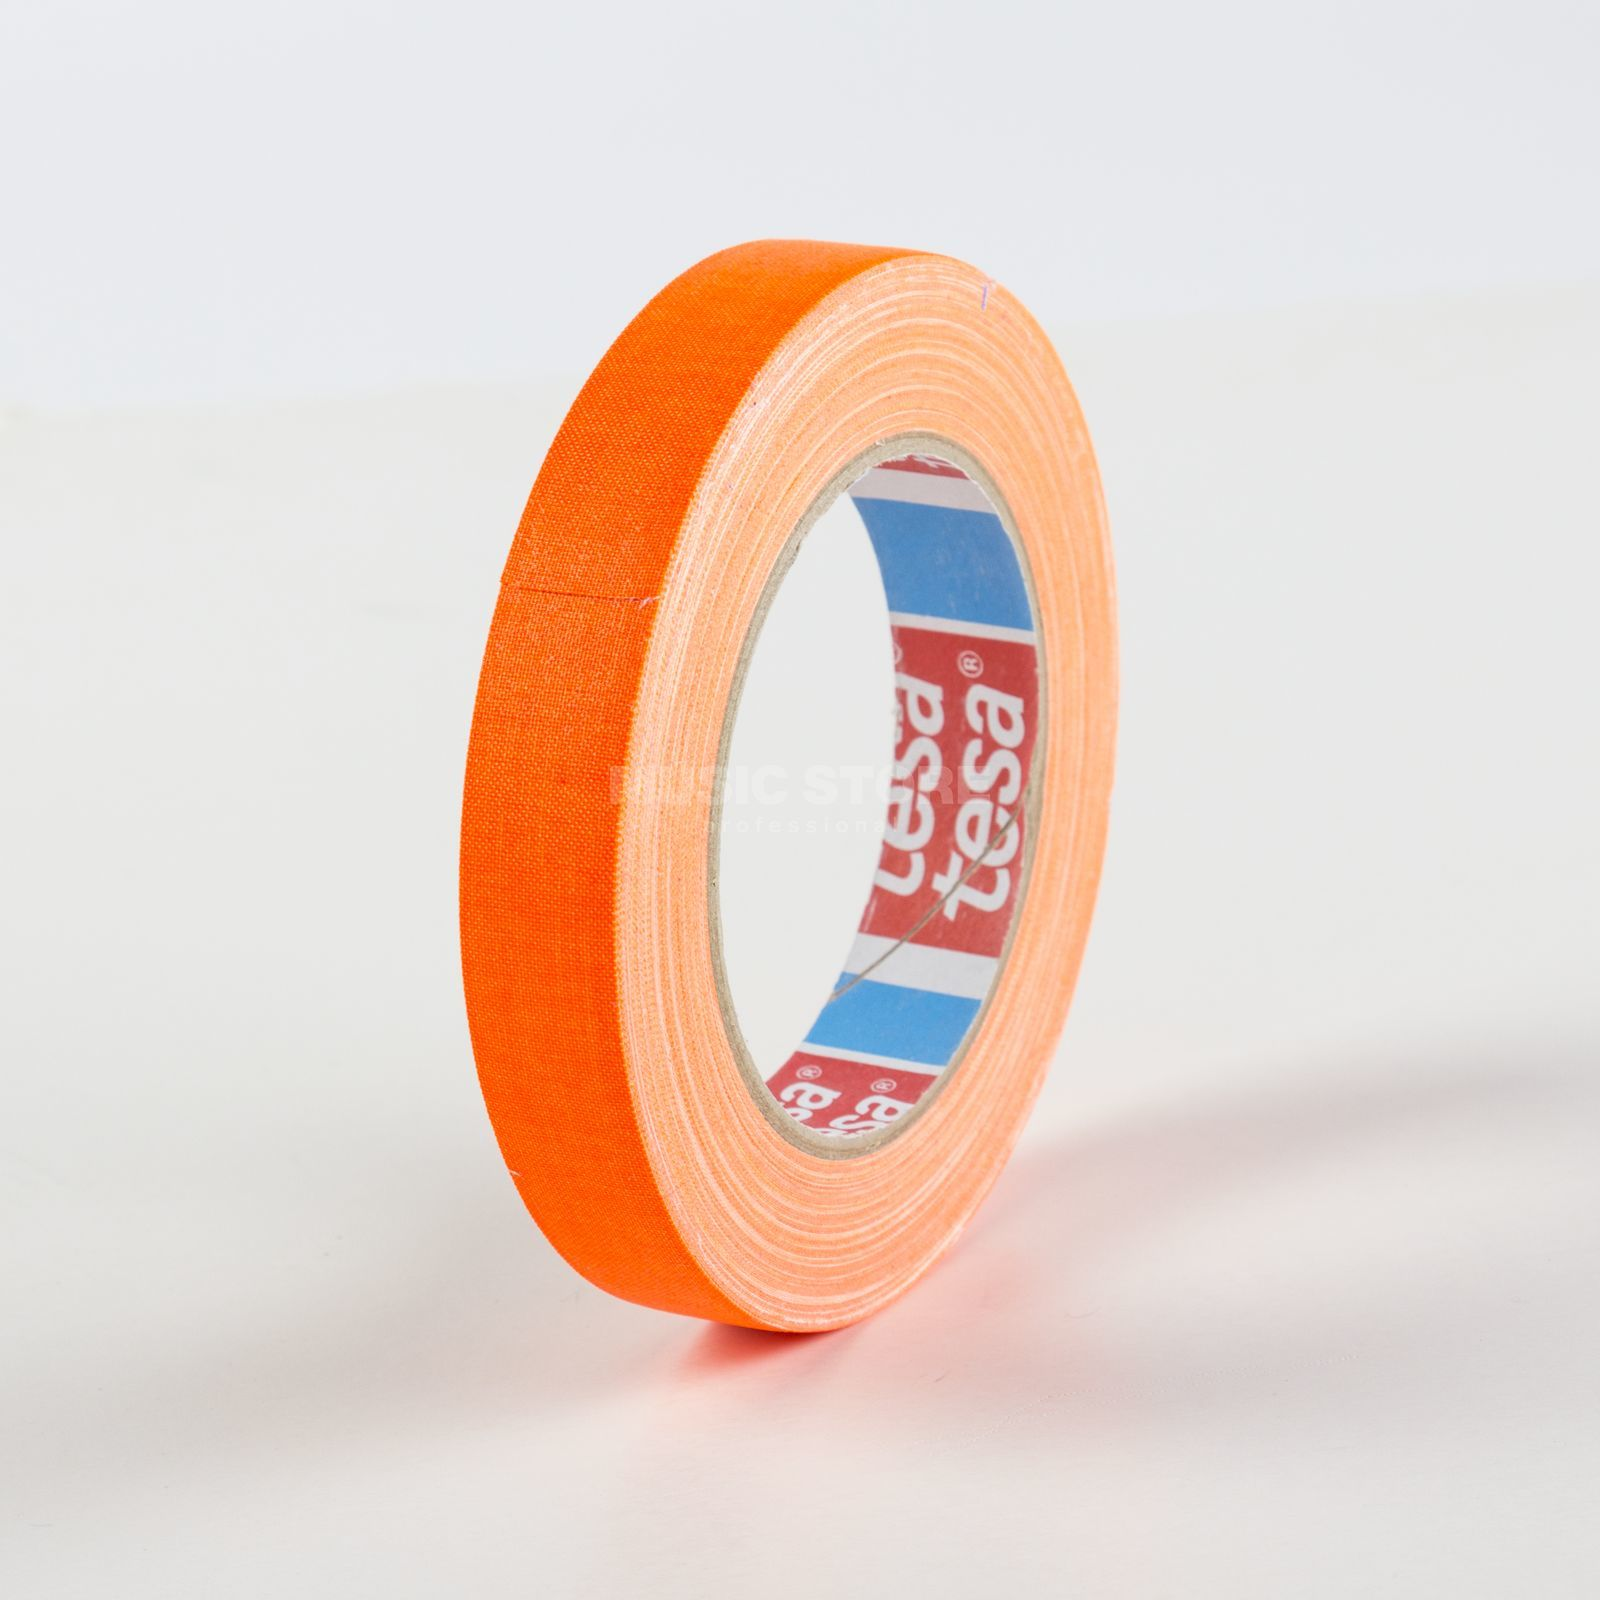 Tesa Highlight Gaffa Tape 4671 neonorange, 25m, 19 mm Produktbild